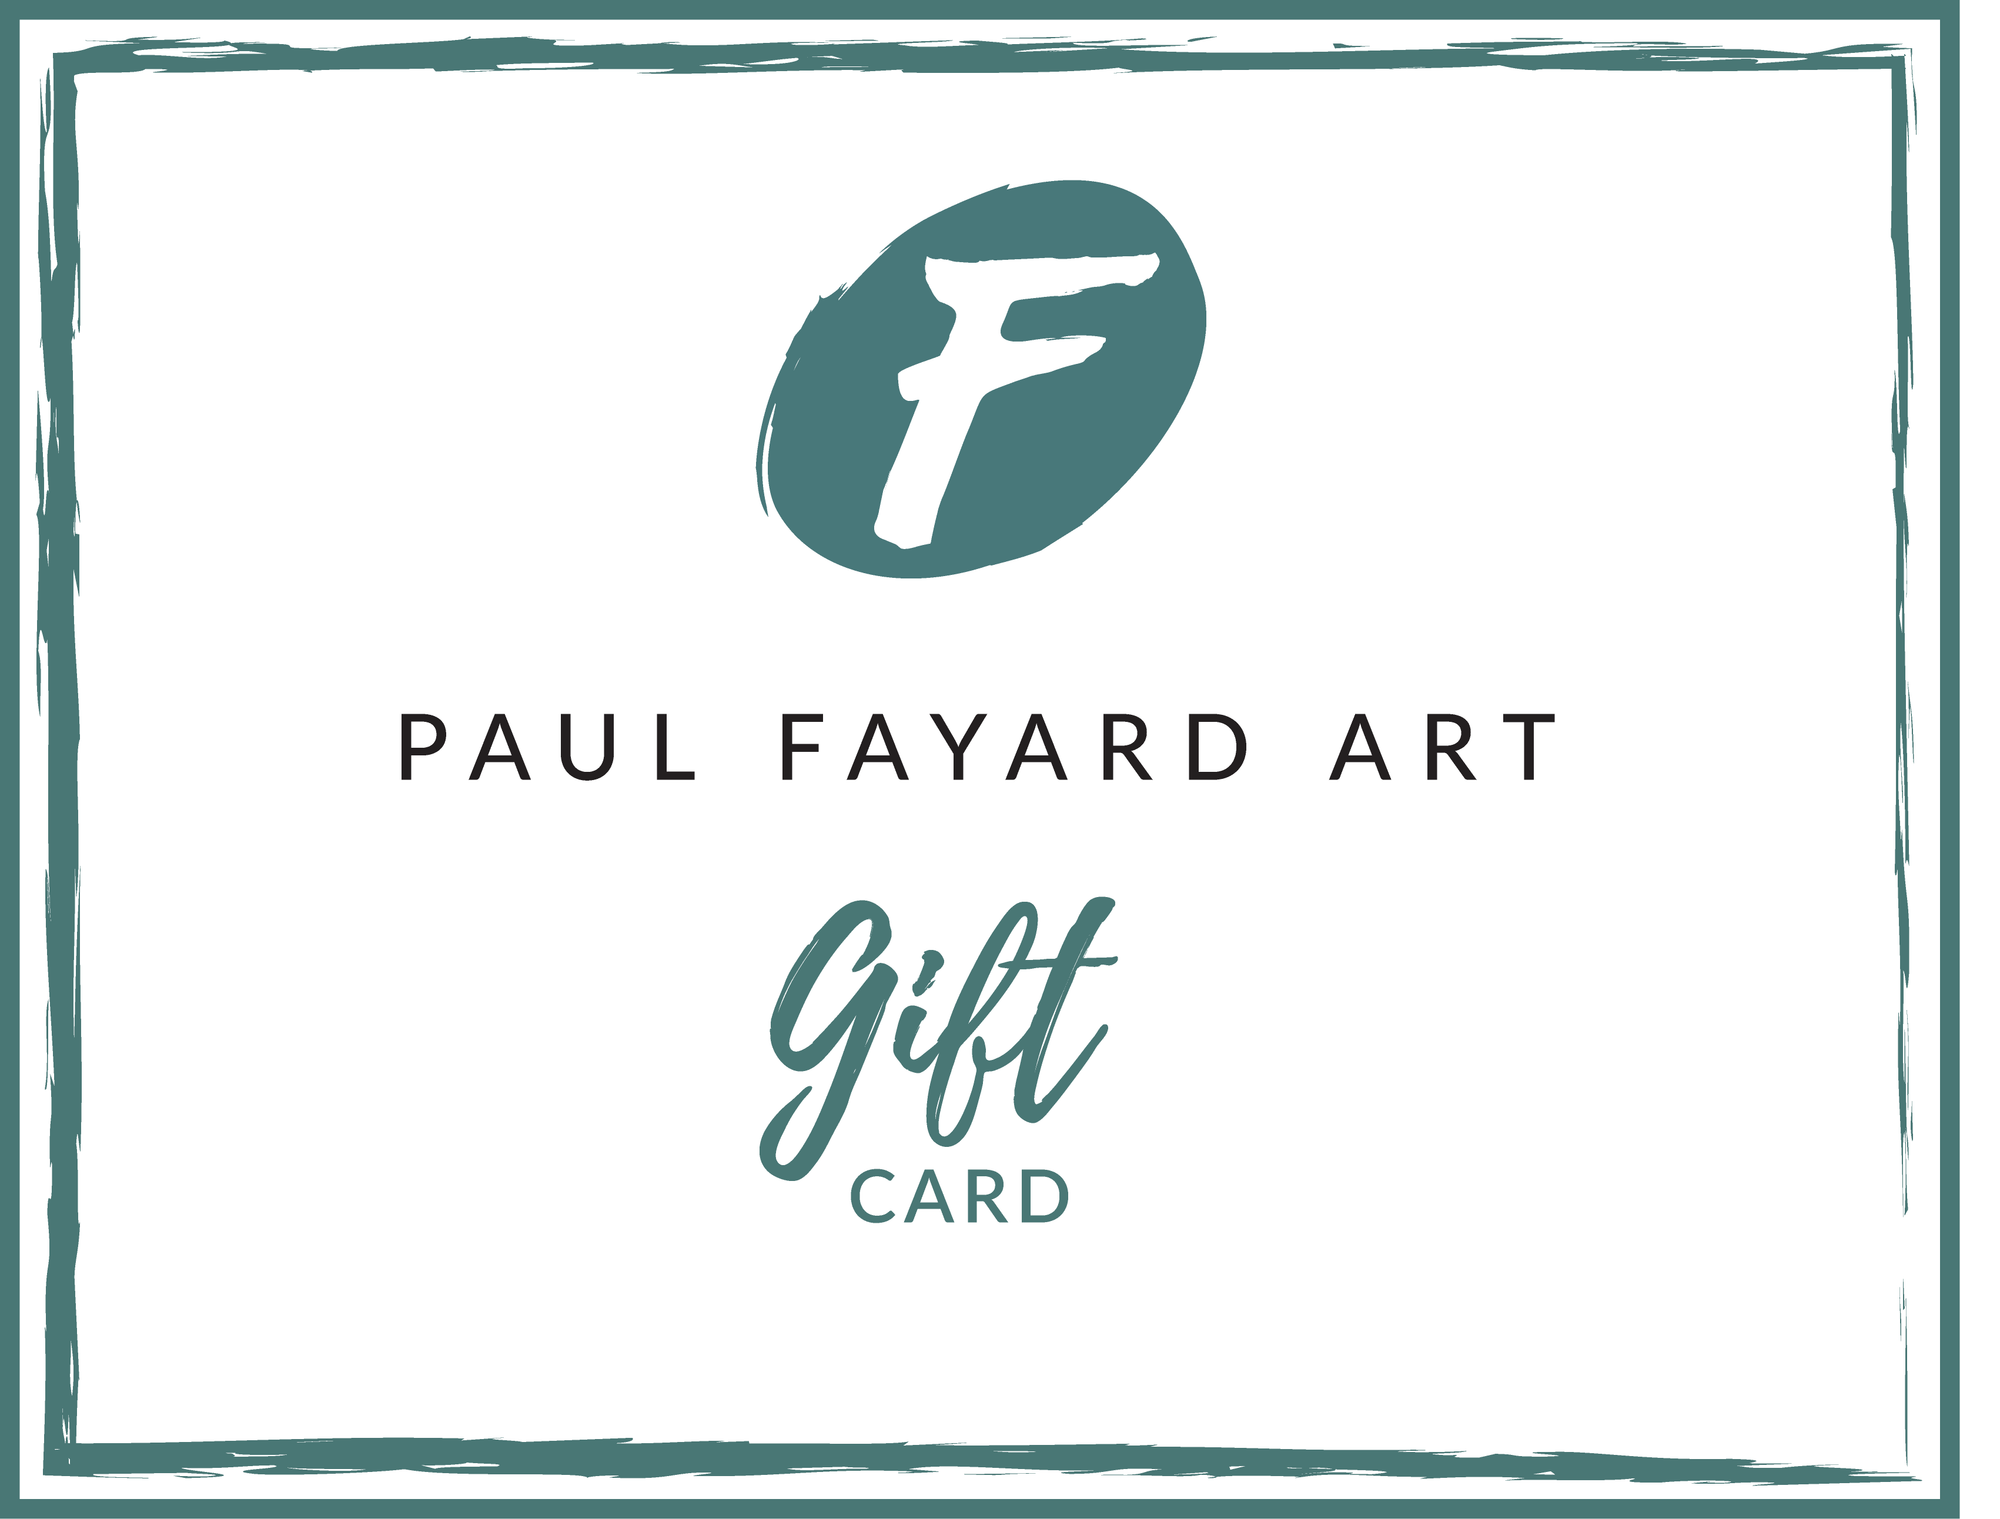 Paul Fayard Art E-Gift Card - PaulFayard